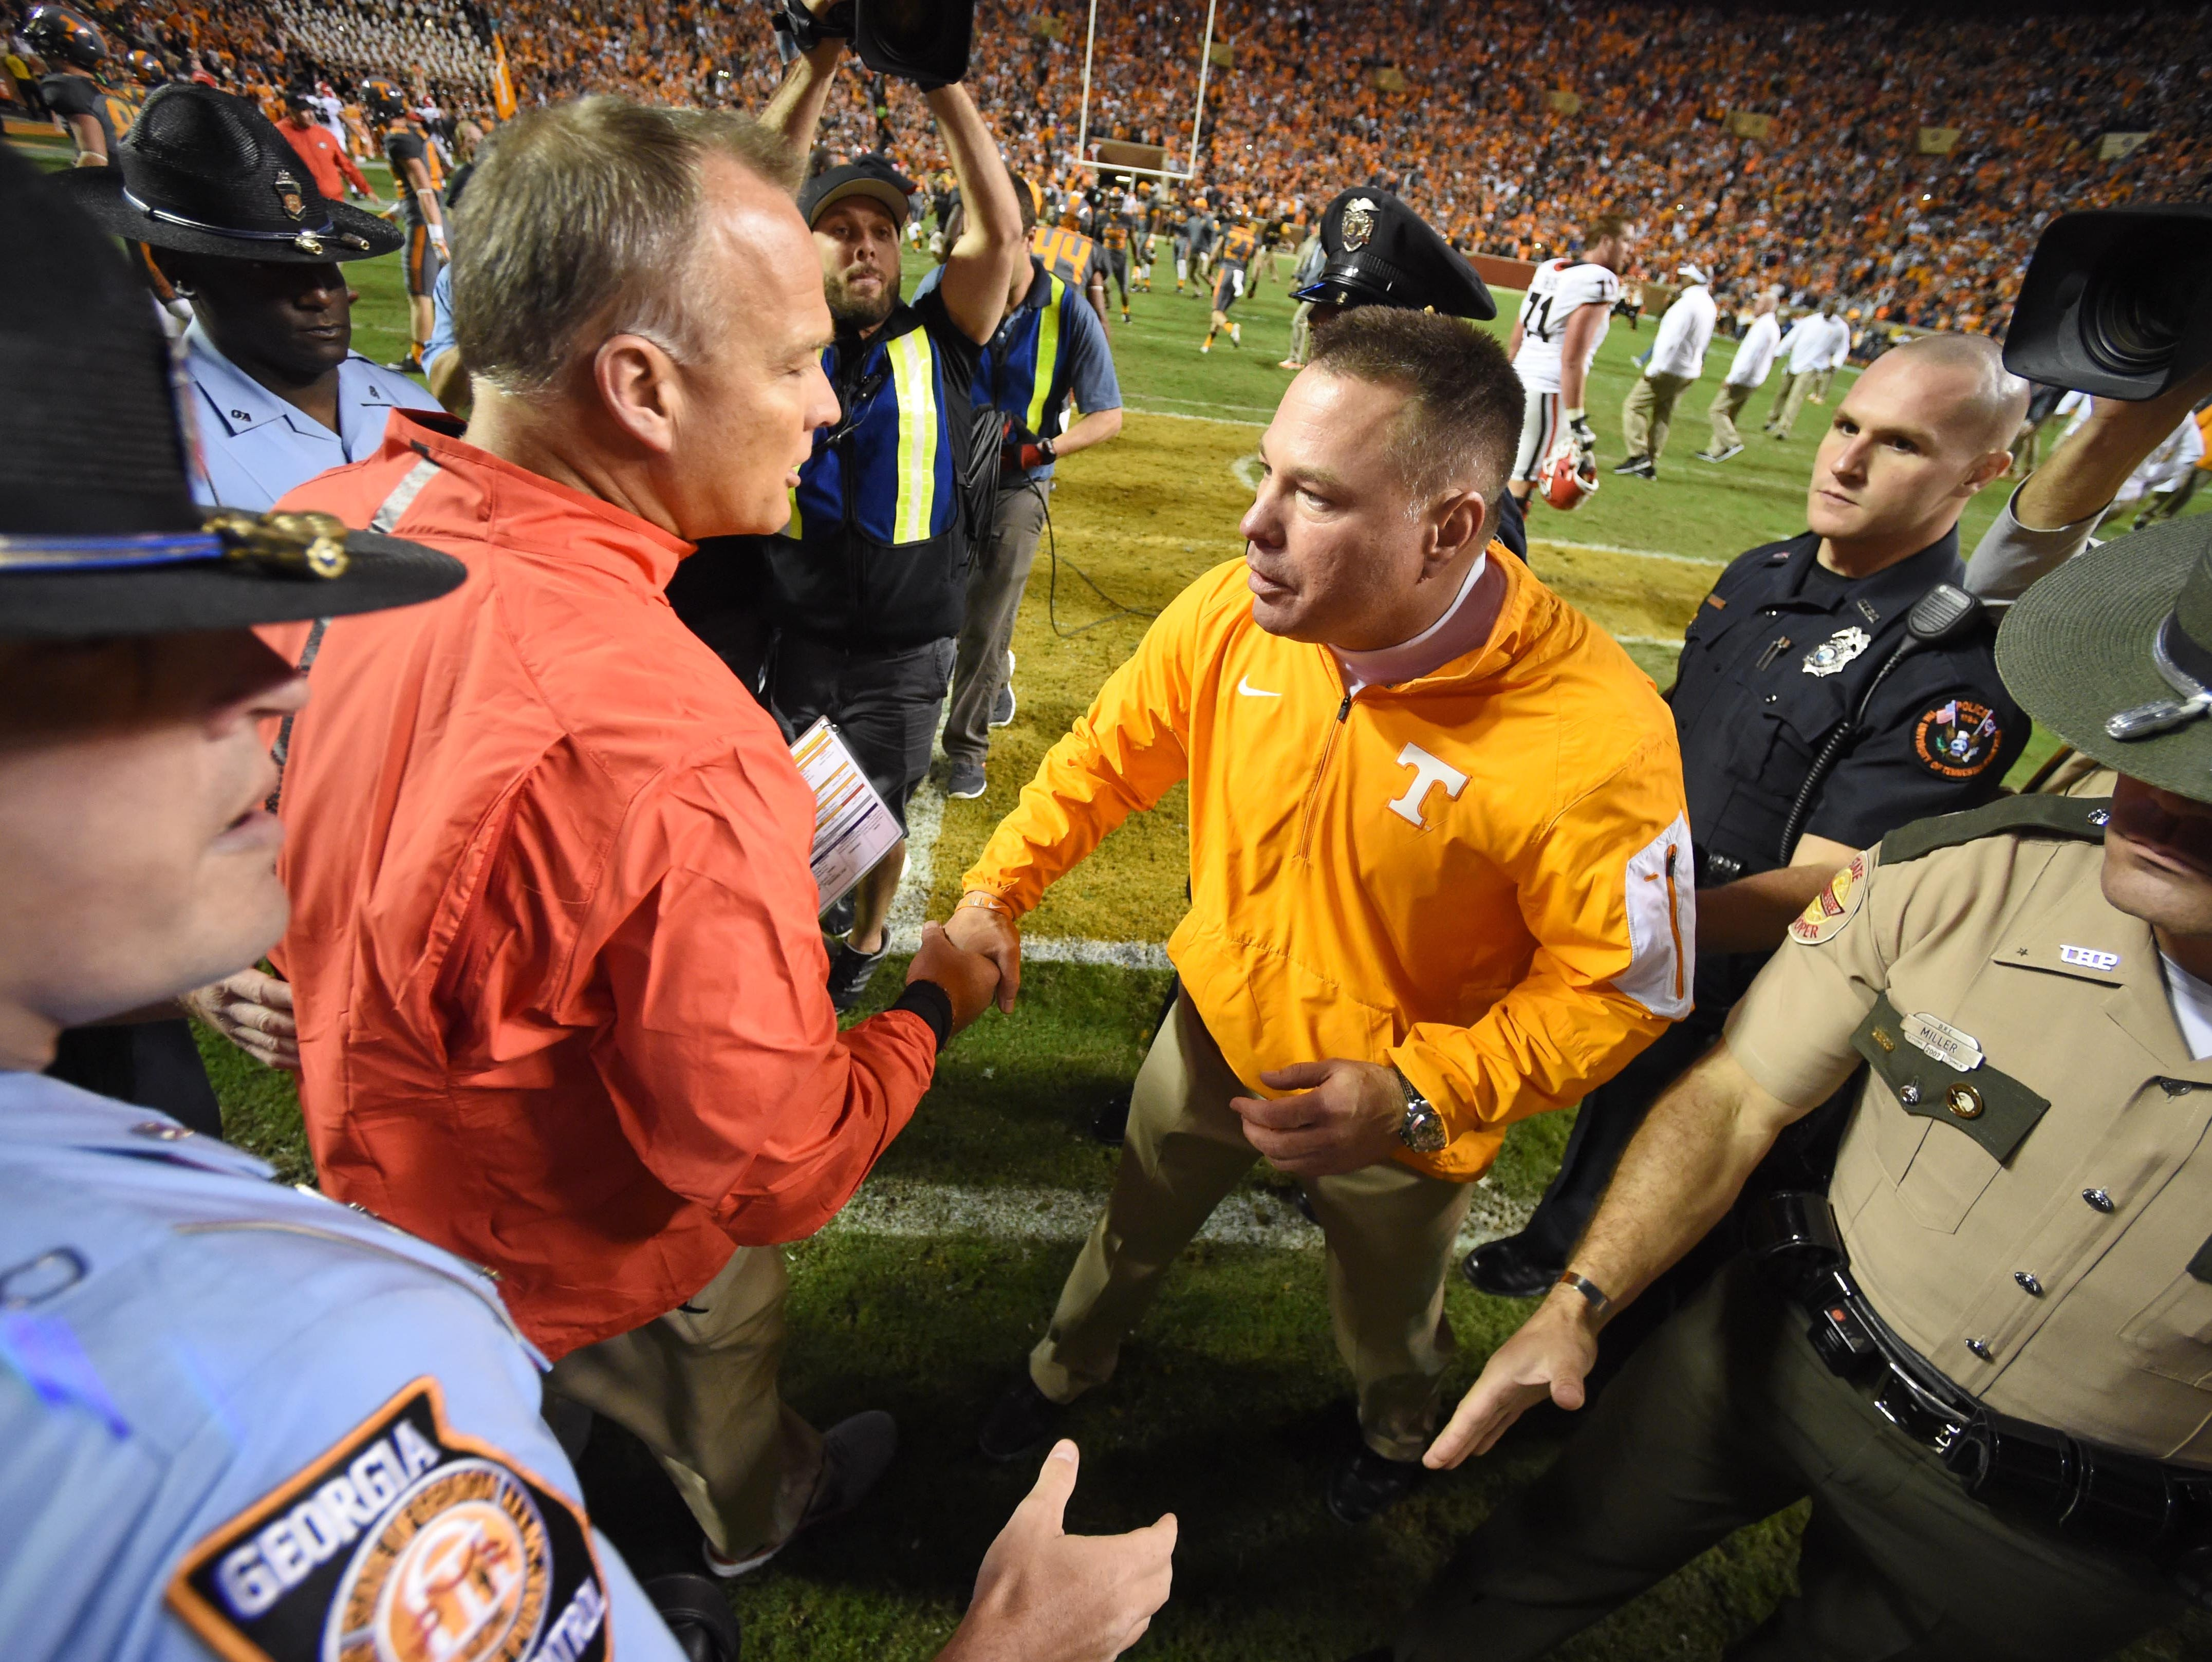 Tennessee coach Butch Jones, right, shakes hands with Georgia coach Mark Richt after the Vols' 38-31 victory over the Bulldogs Saturday, Oct. 10, 2015, at Neyland Stadium.